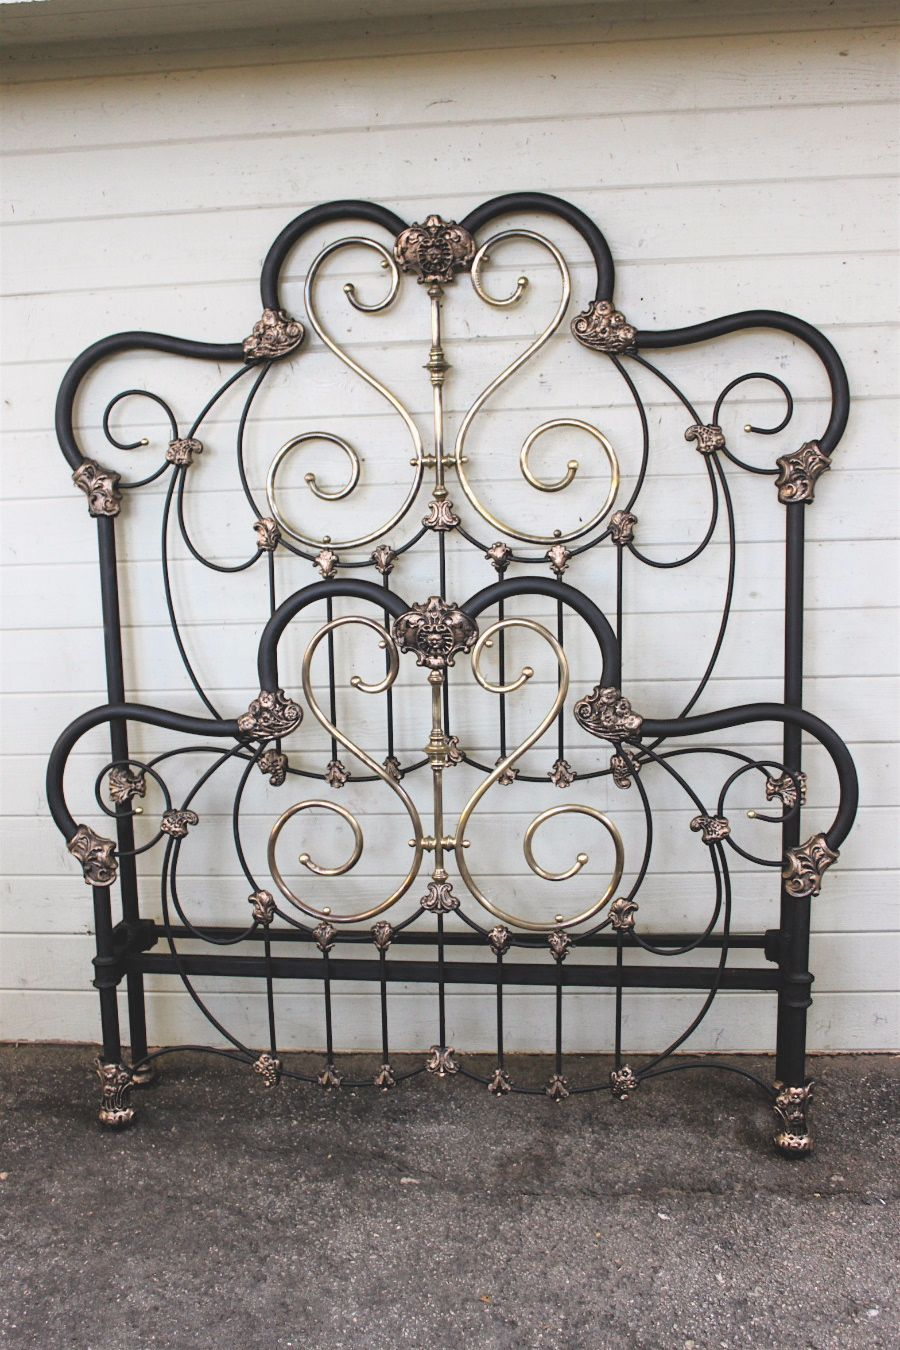 Antique Iron Bed 7 Cathouse Beds Iron Headboard Iron Bed Frame Iron Bed